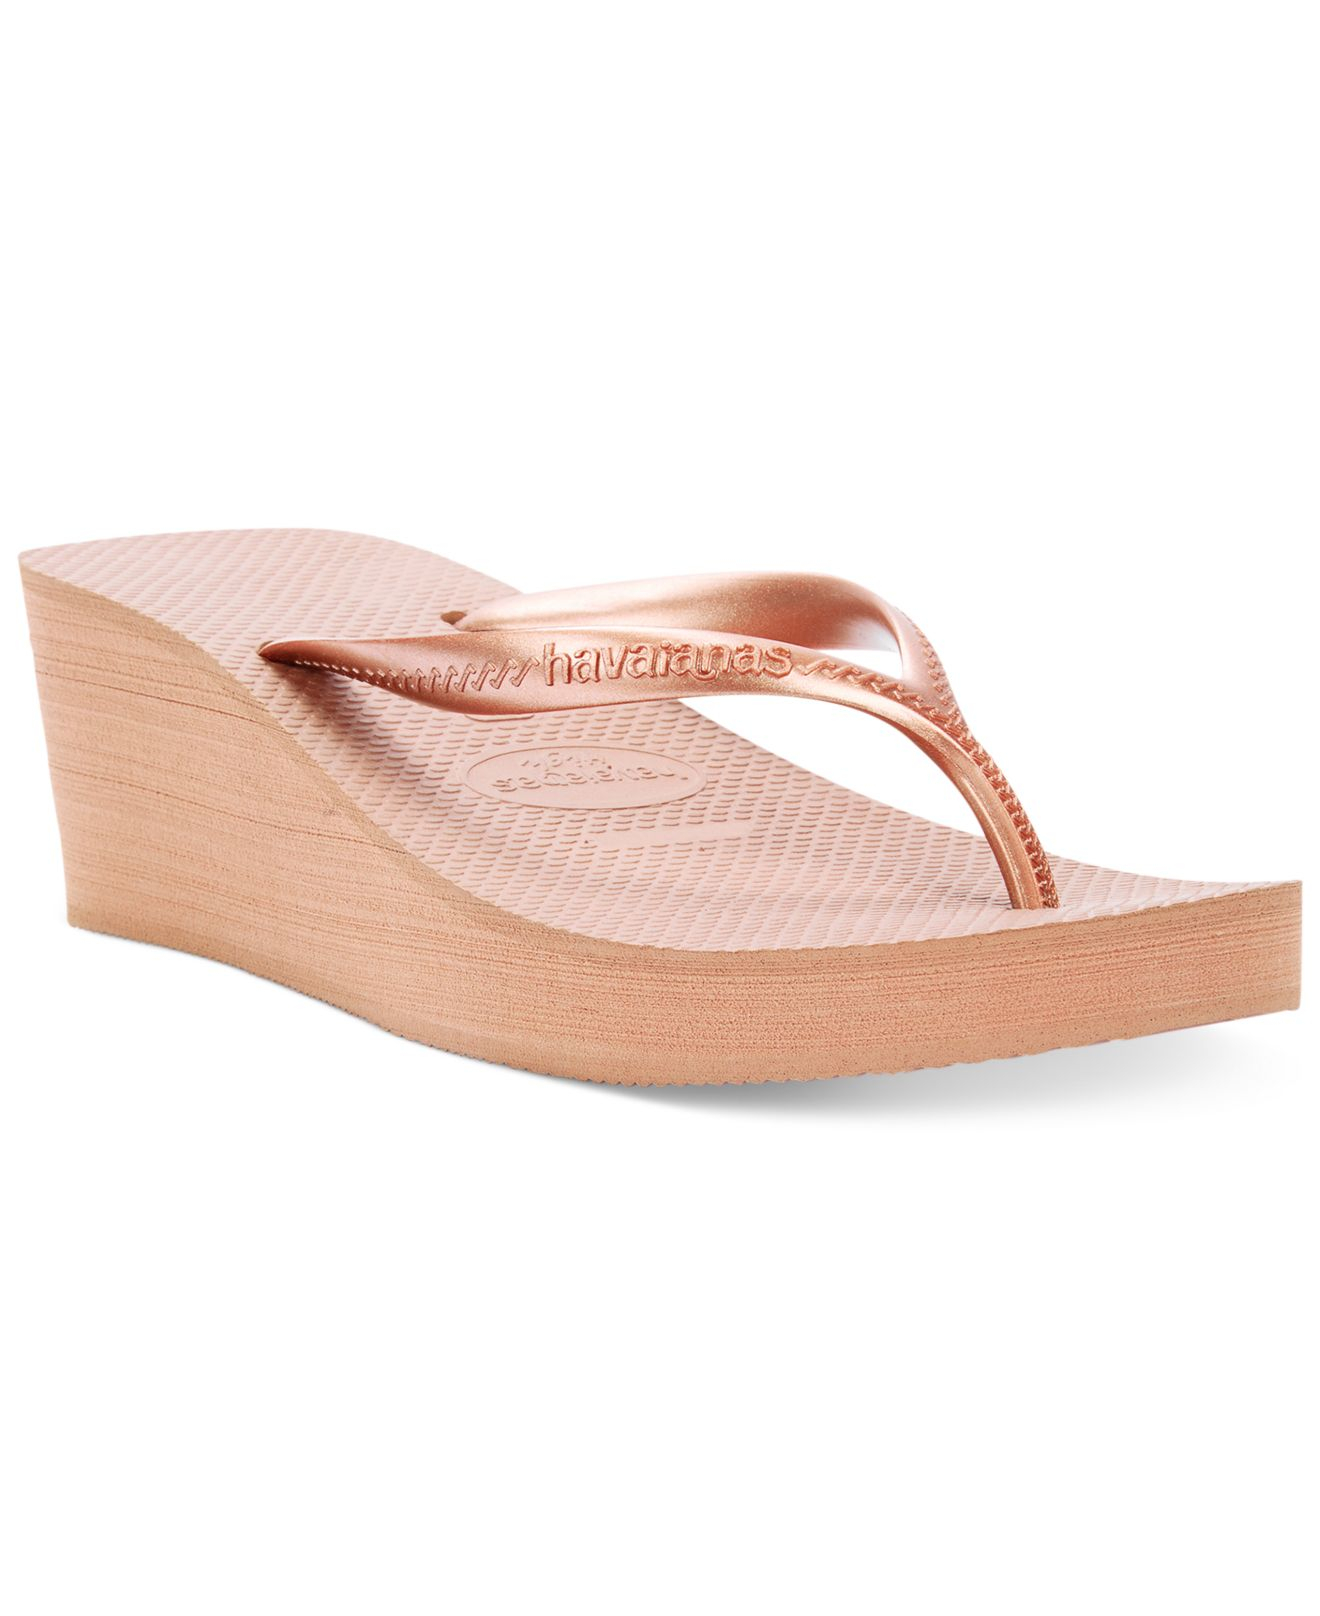 Havaianas Womens High Fashion Wedge Flip Flops In Pink  Lyst-2235